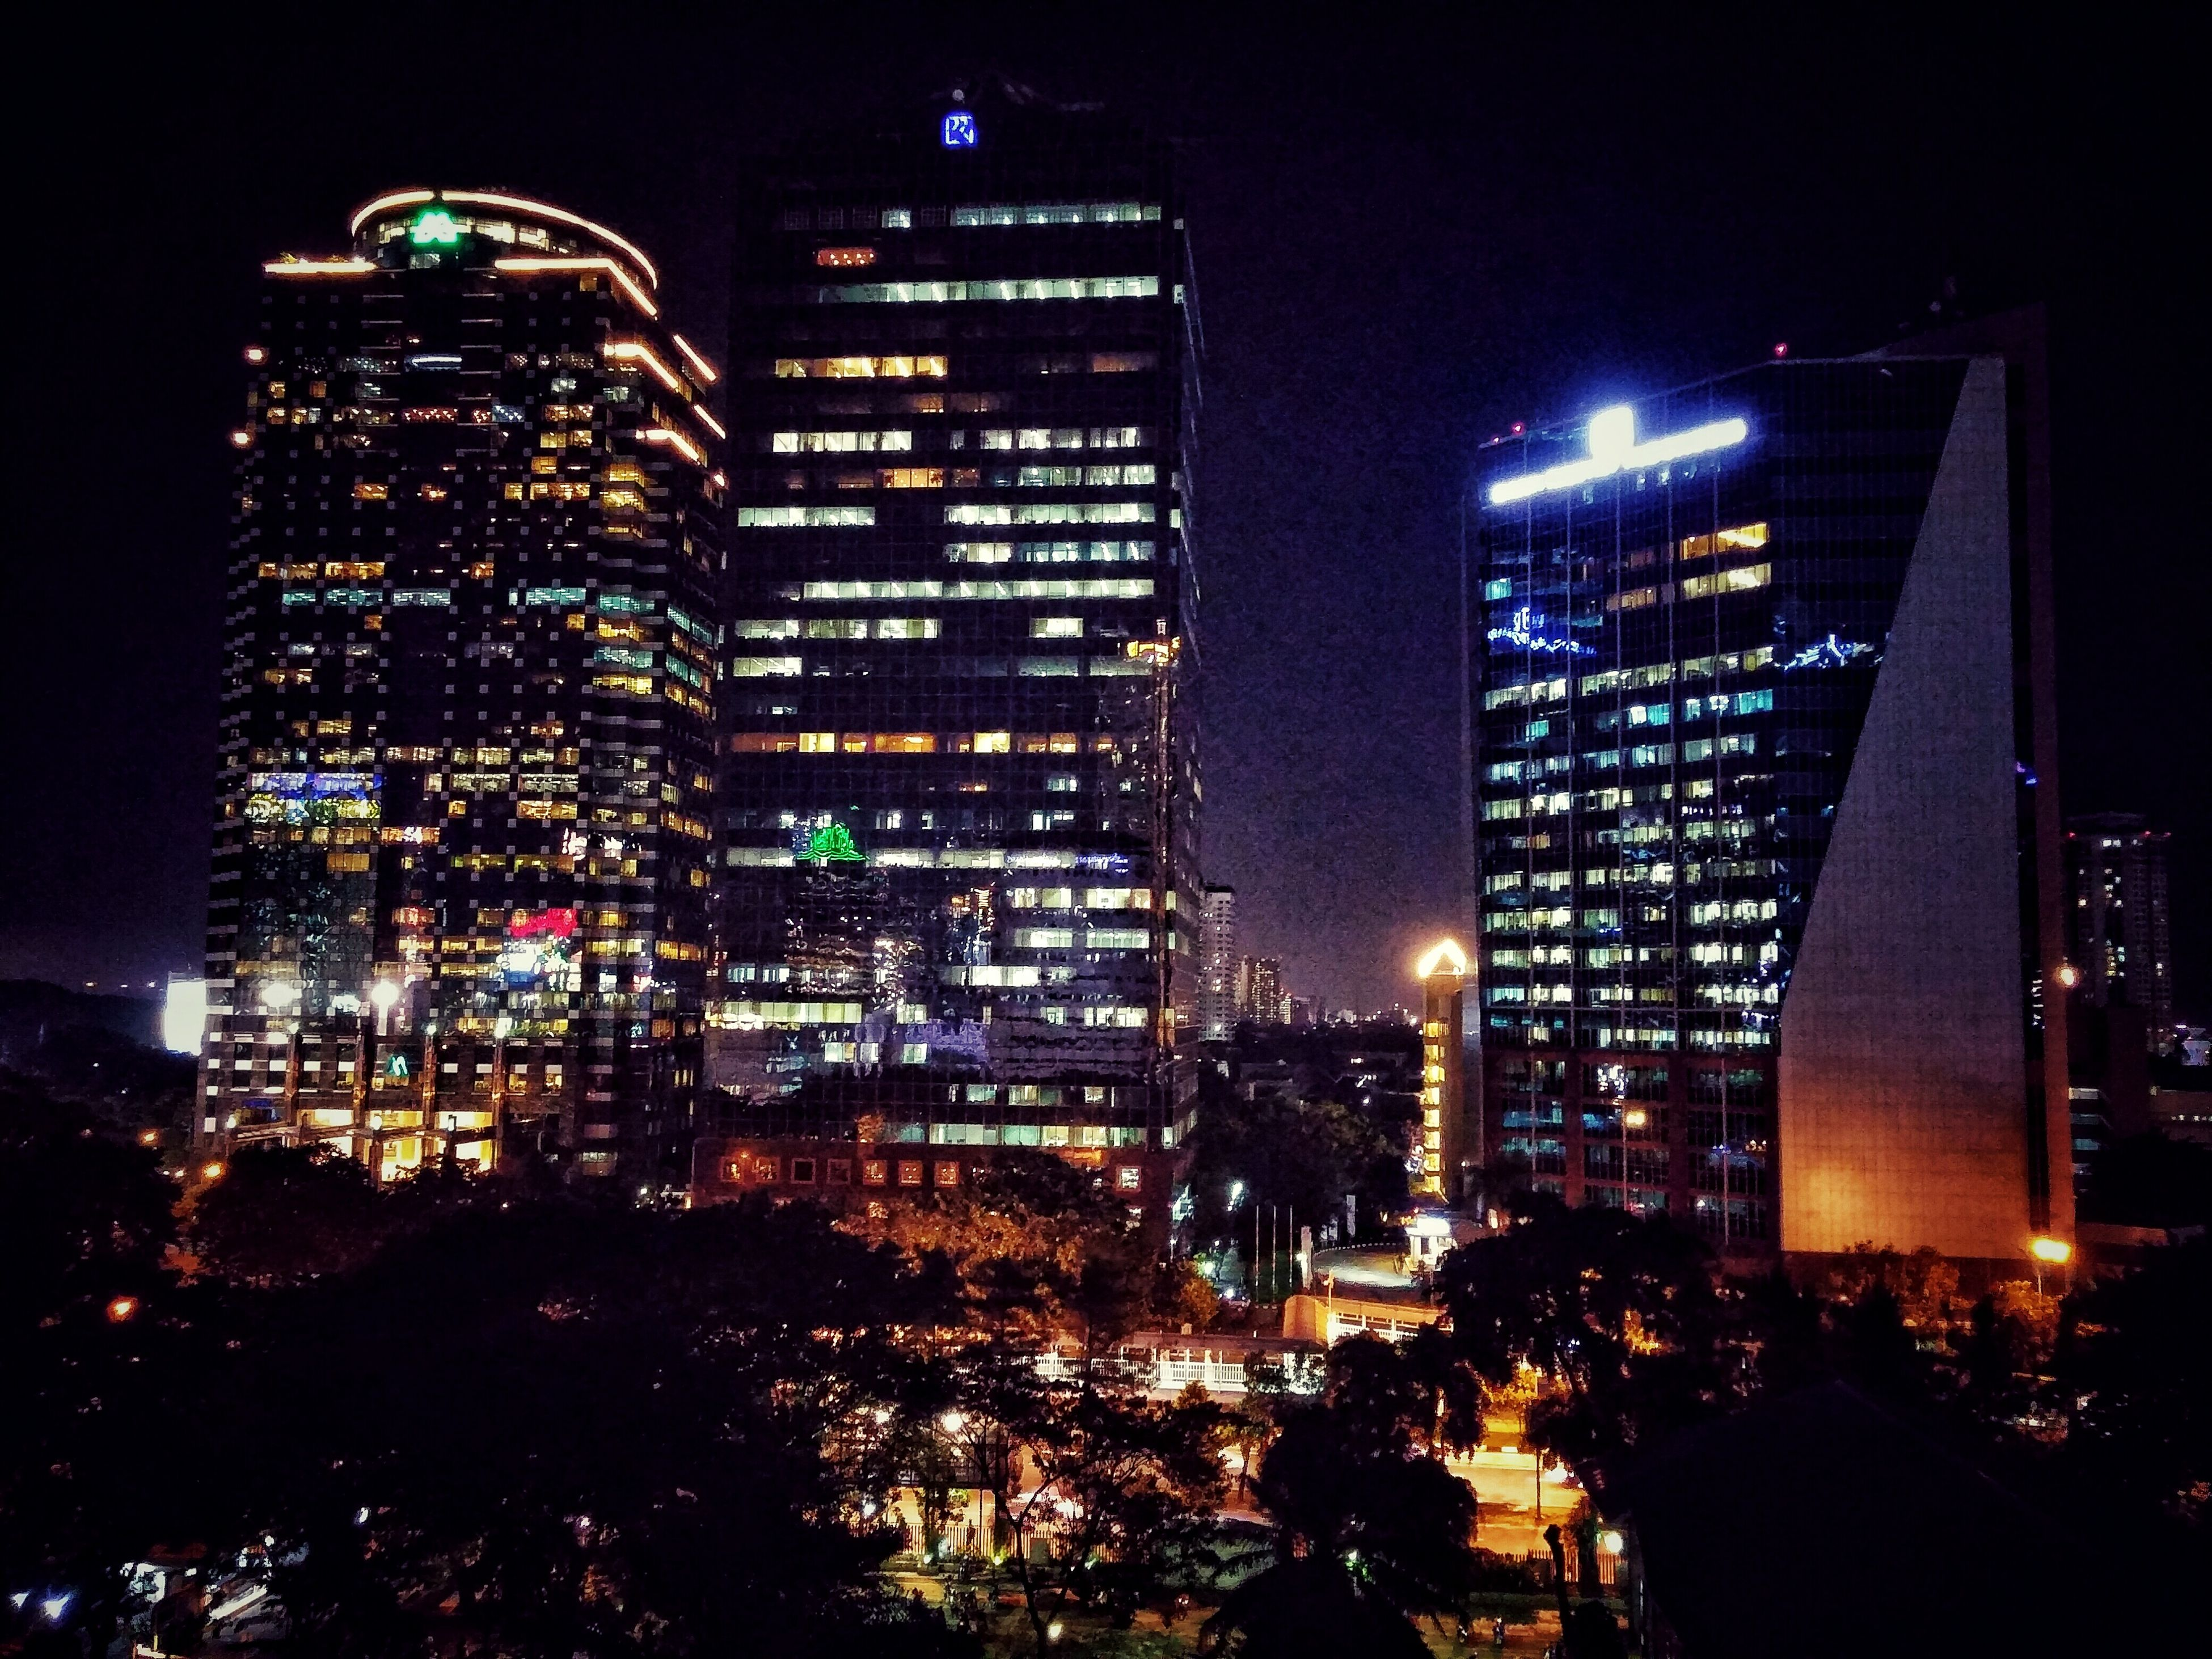 illuminated, night, building exterior, architecture, city, built structure, skyscraper, modern, tall - high, tower, cityscape, office building, city life, capital cities, financial district, dark, light - natural phenomenon, sky, crowded, lighting equipment